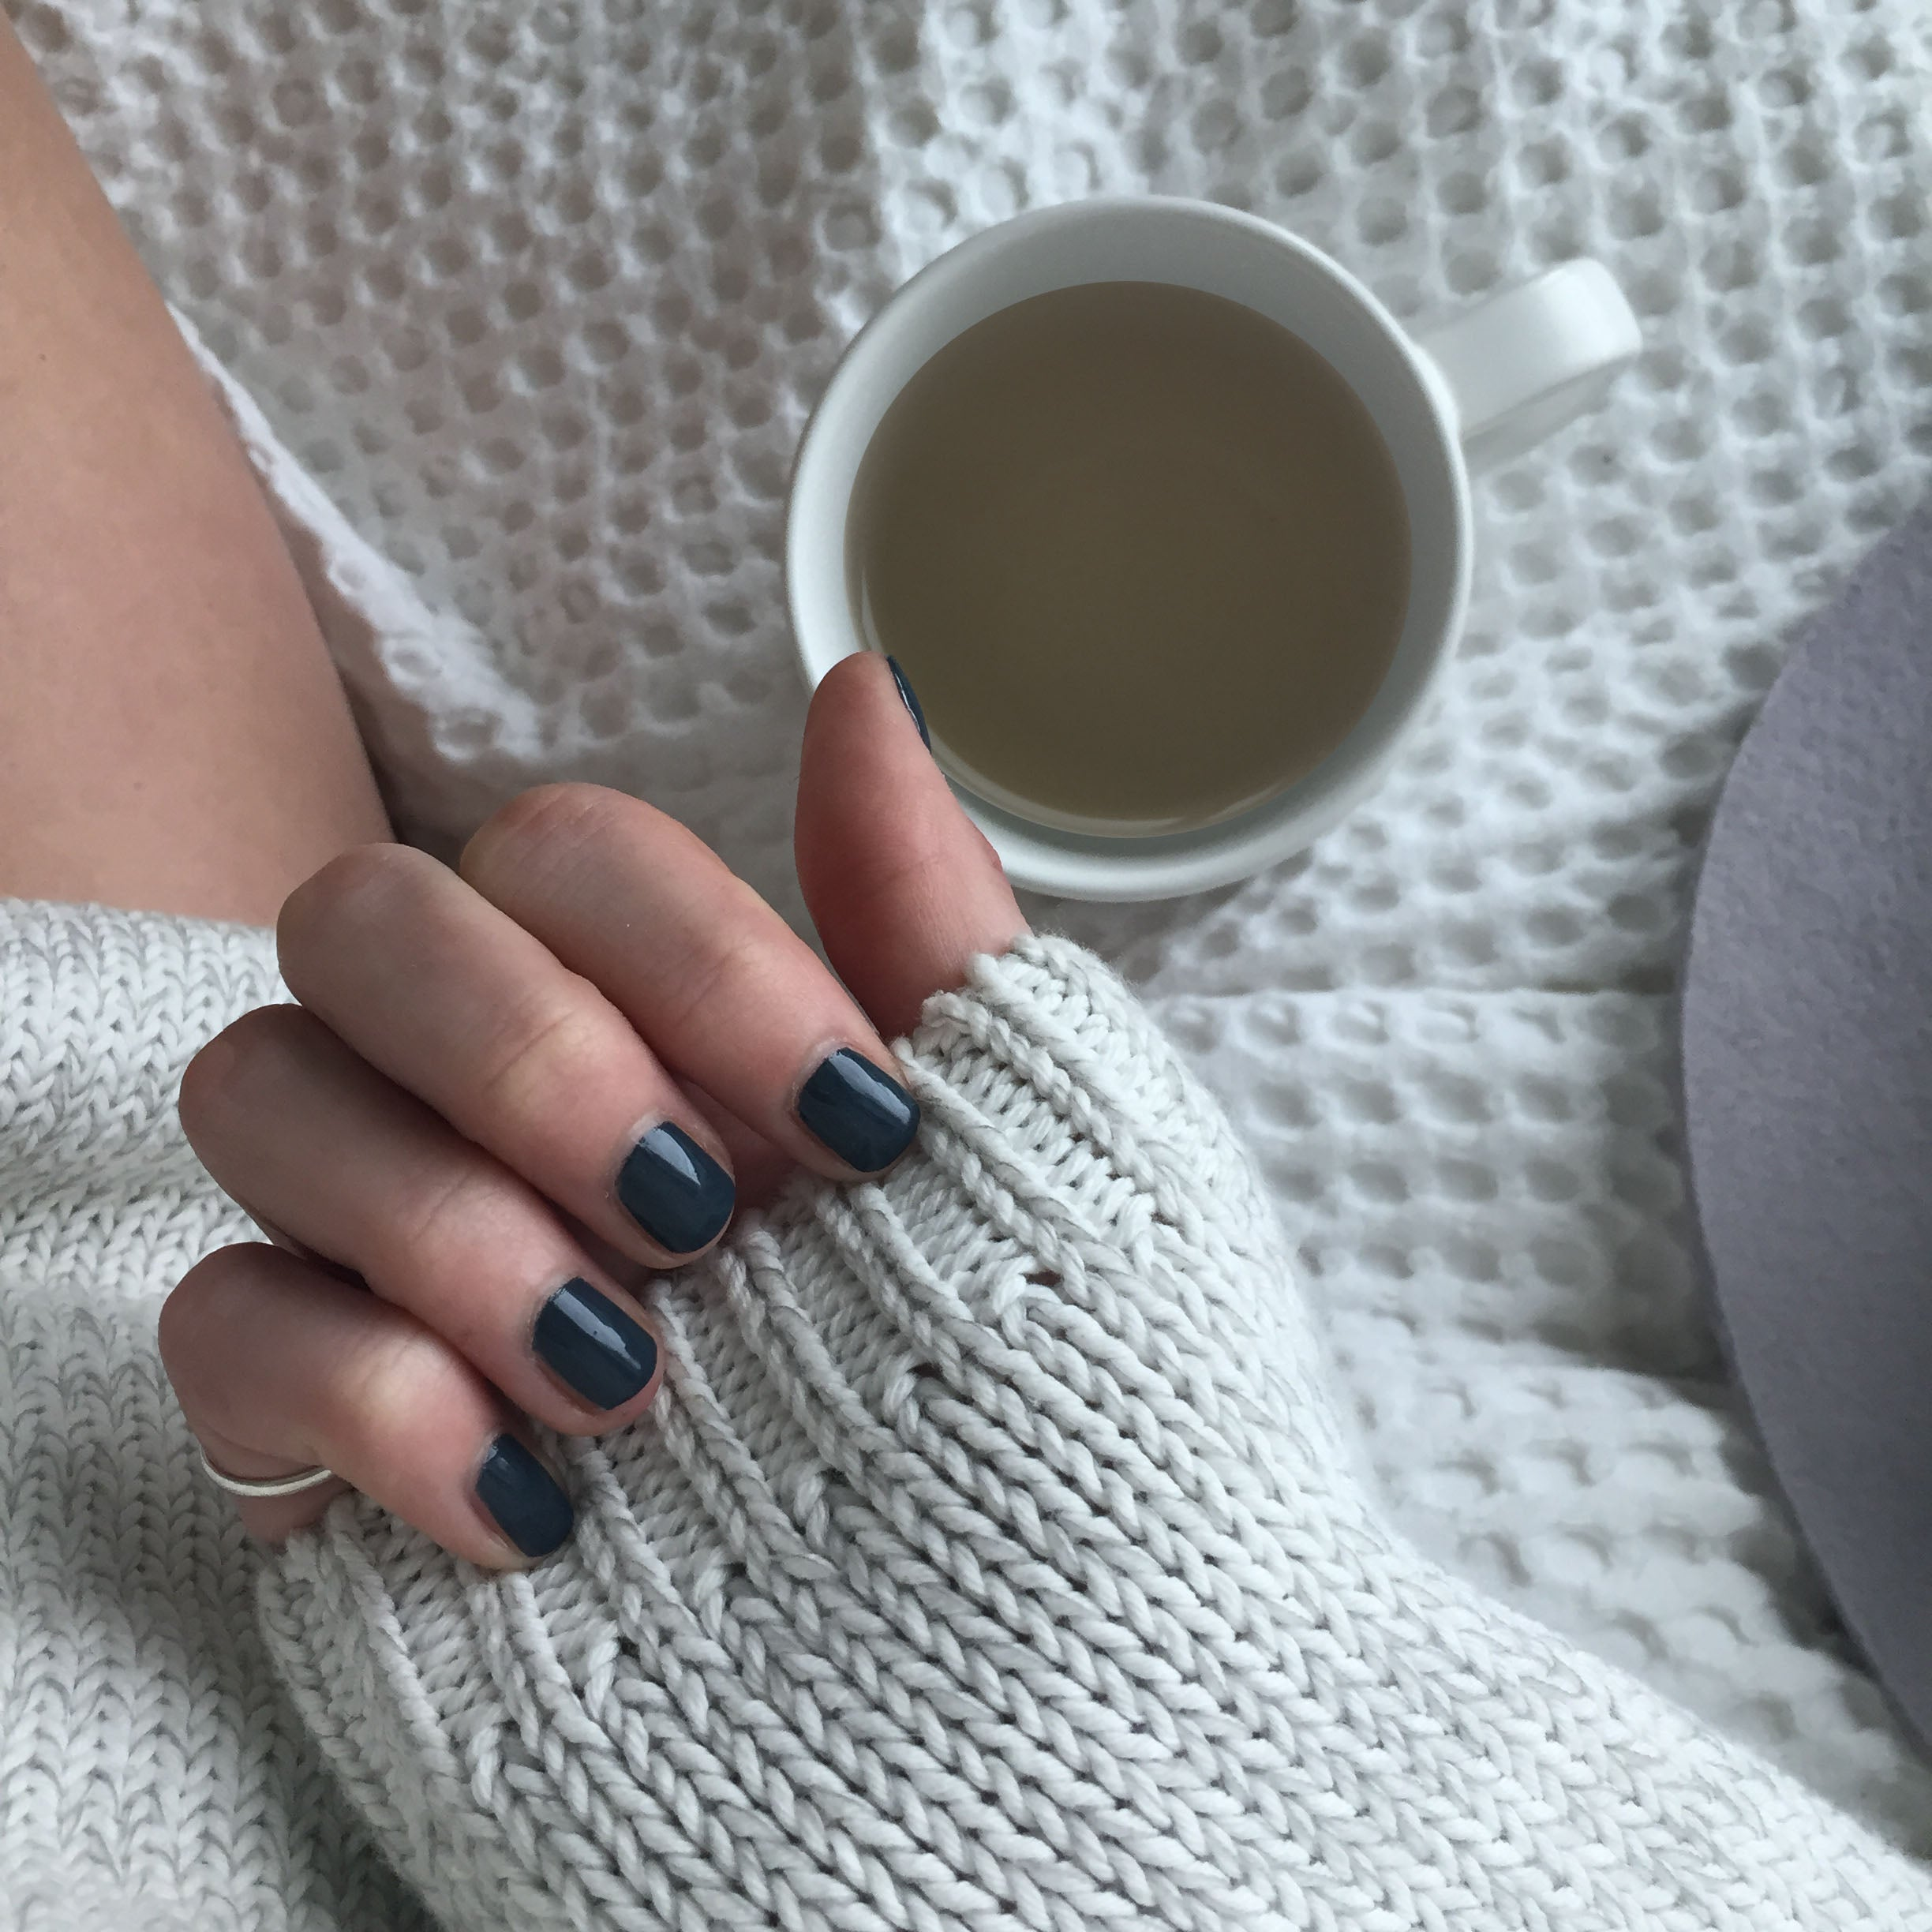 A female clutching the sleeve of her white woolen sweater wearing Storm Grey, a dark blue grey nail polish with green undertones. Constrasting to her cup of tea and blanket in the background.